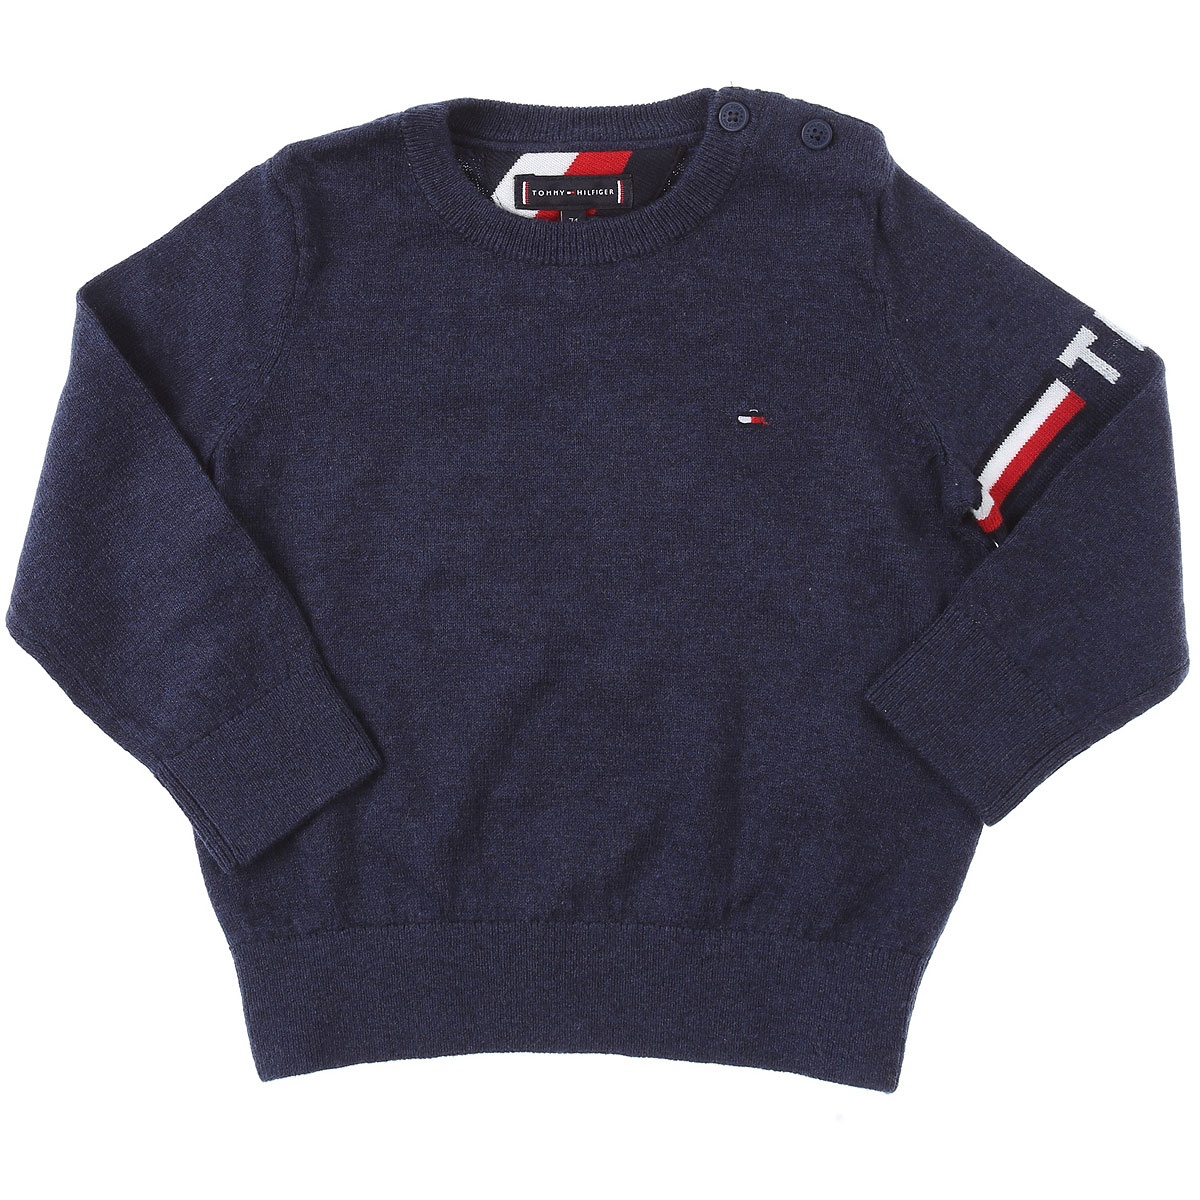 Tommy Hilfiger Baby Sweaters for Boys On Sale, Black Iris, Cotton, 2019, 12 M 2Y 3Y 9M